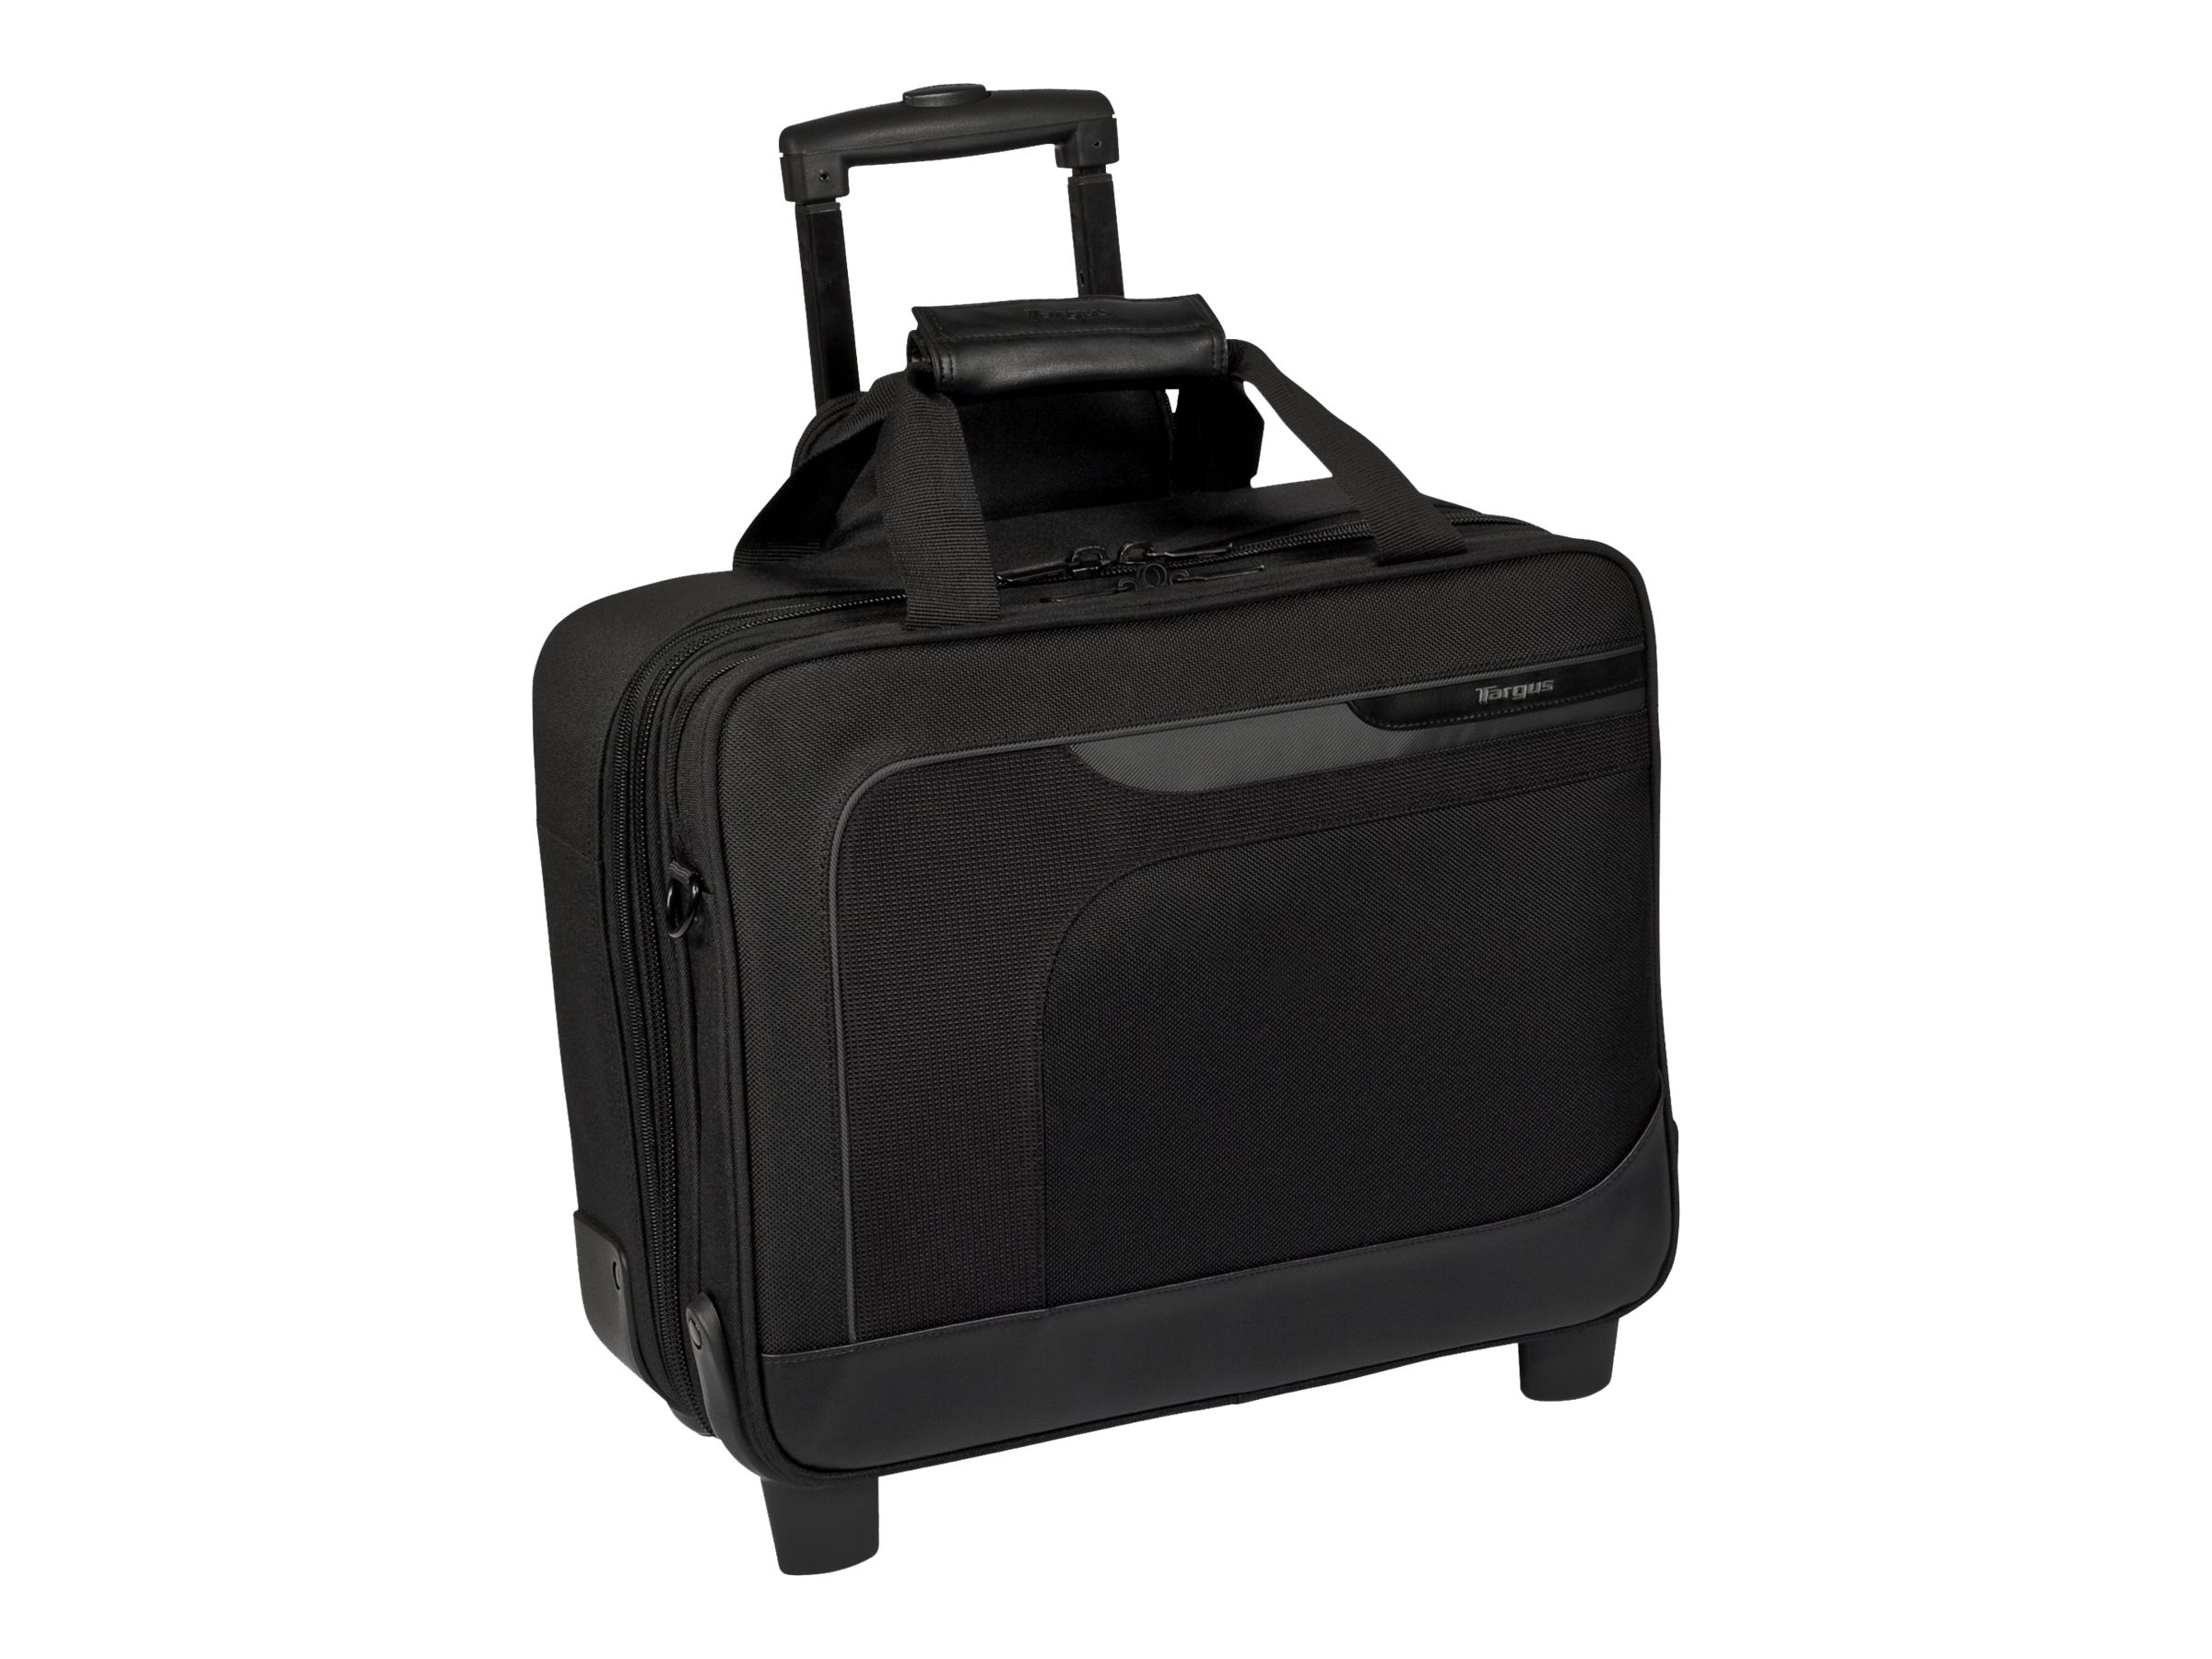 Targus Zip-Thru 15.6 Mobile Elite Roller Case, Black Gray, TBR006US, 9425208, Carrying Cases - Notebook